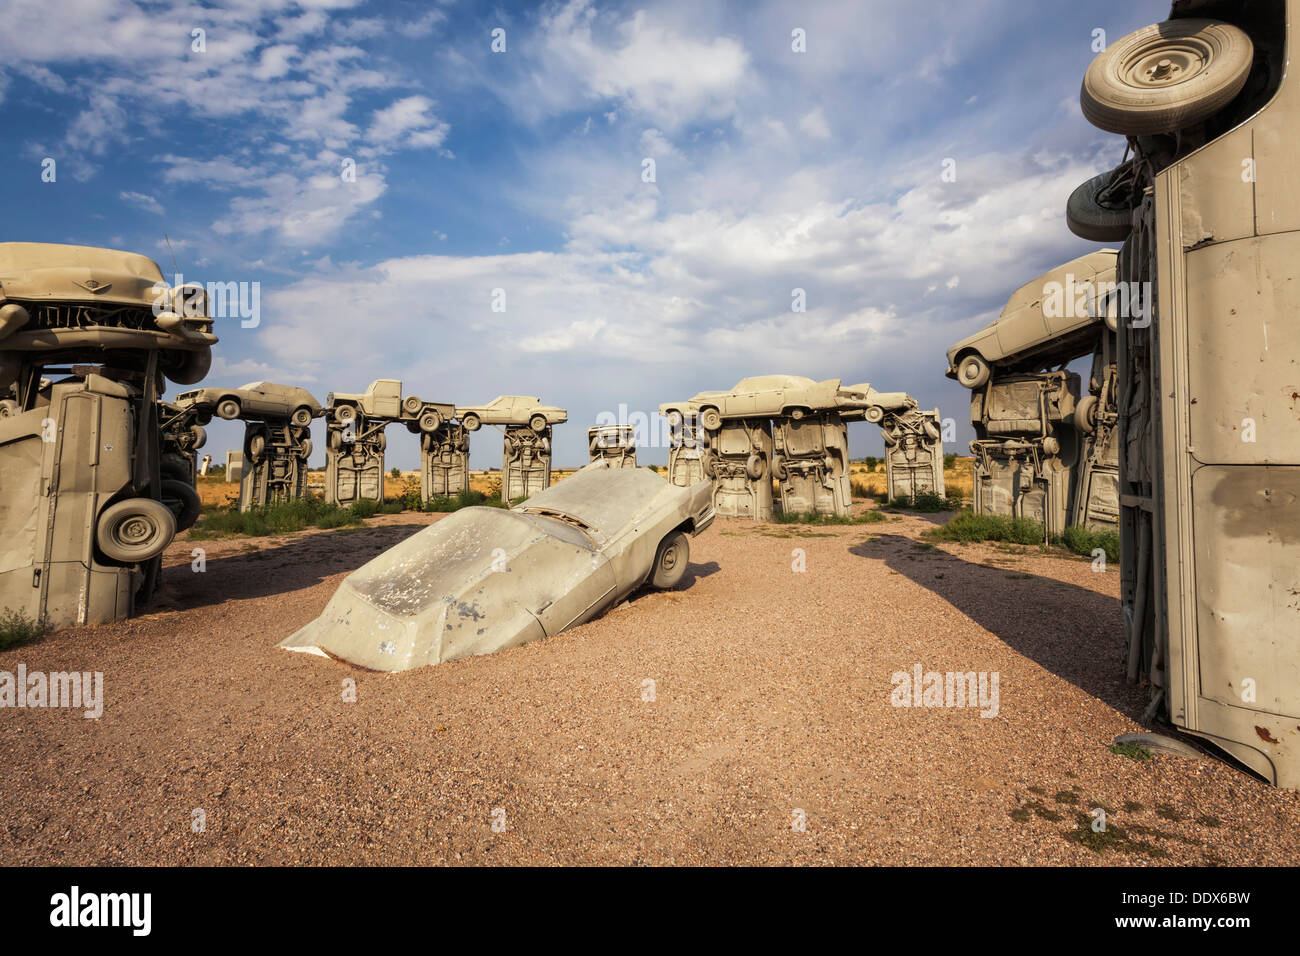 Cars arranged to replicate Stonehenge in England is called Carhenge, Alliance, Nebraska - Stock Image